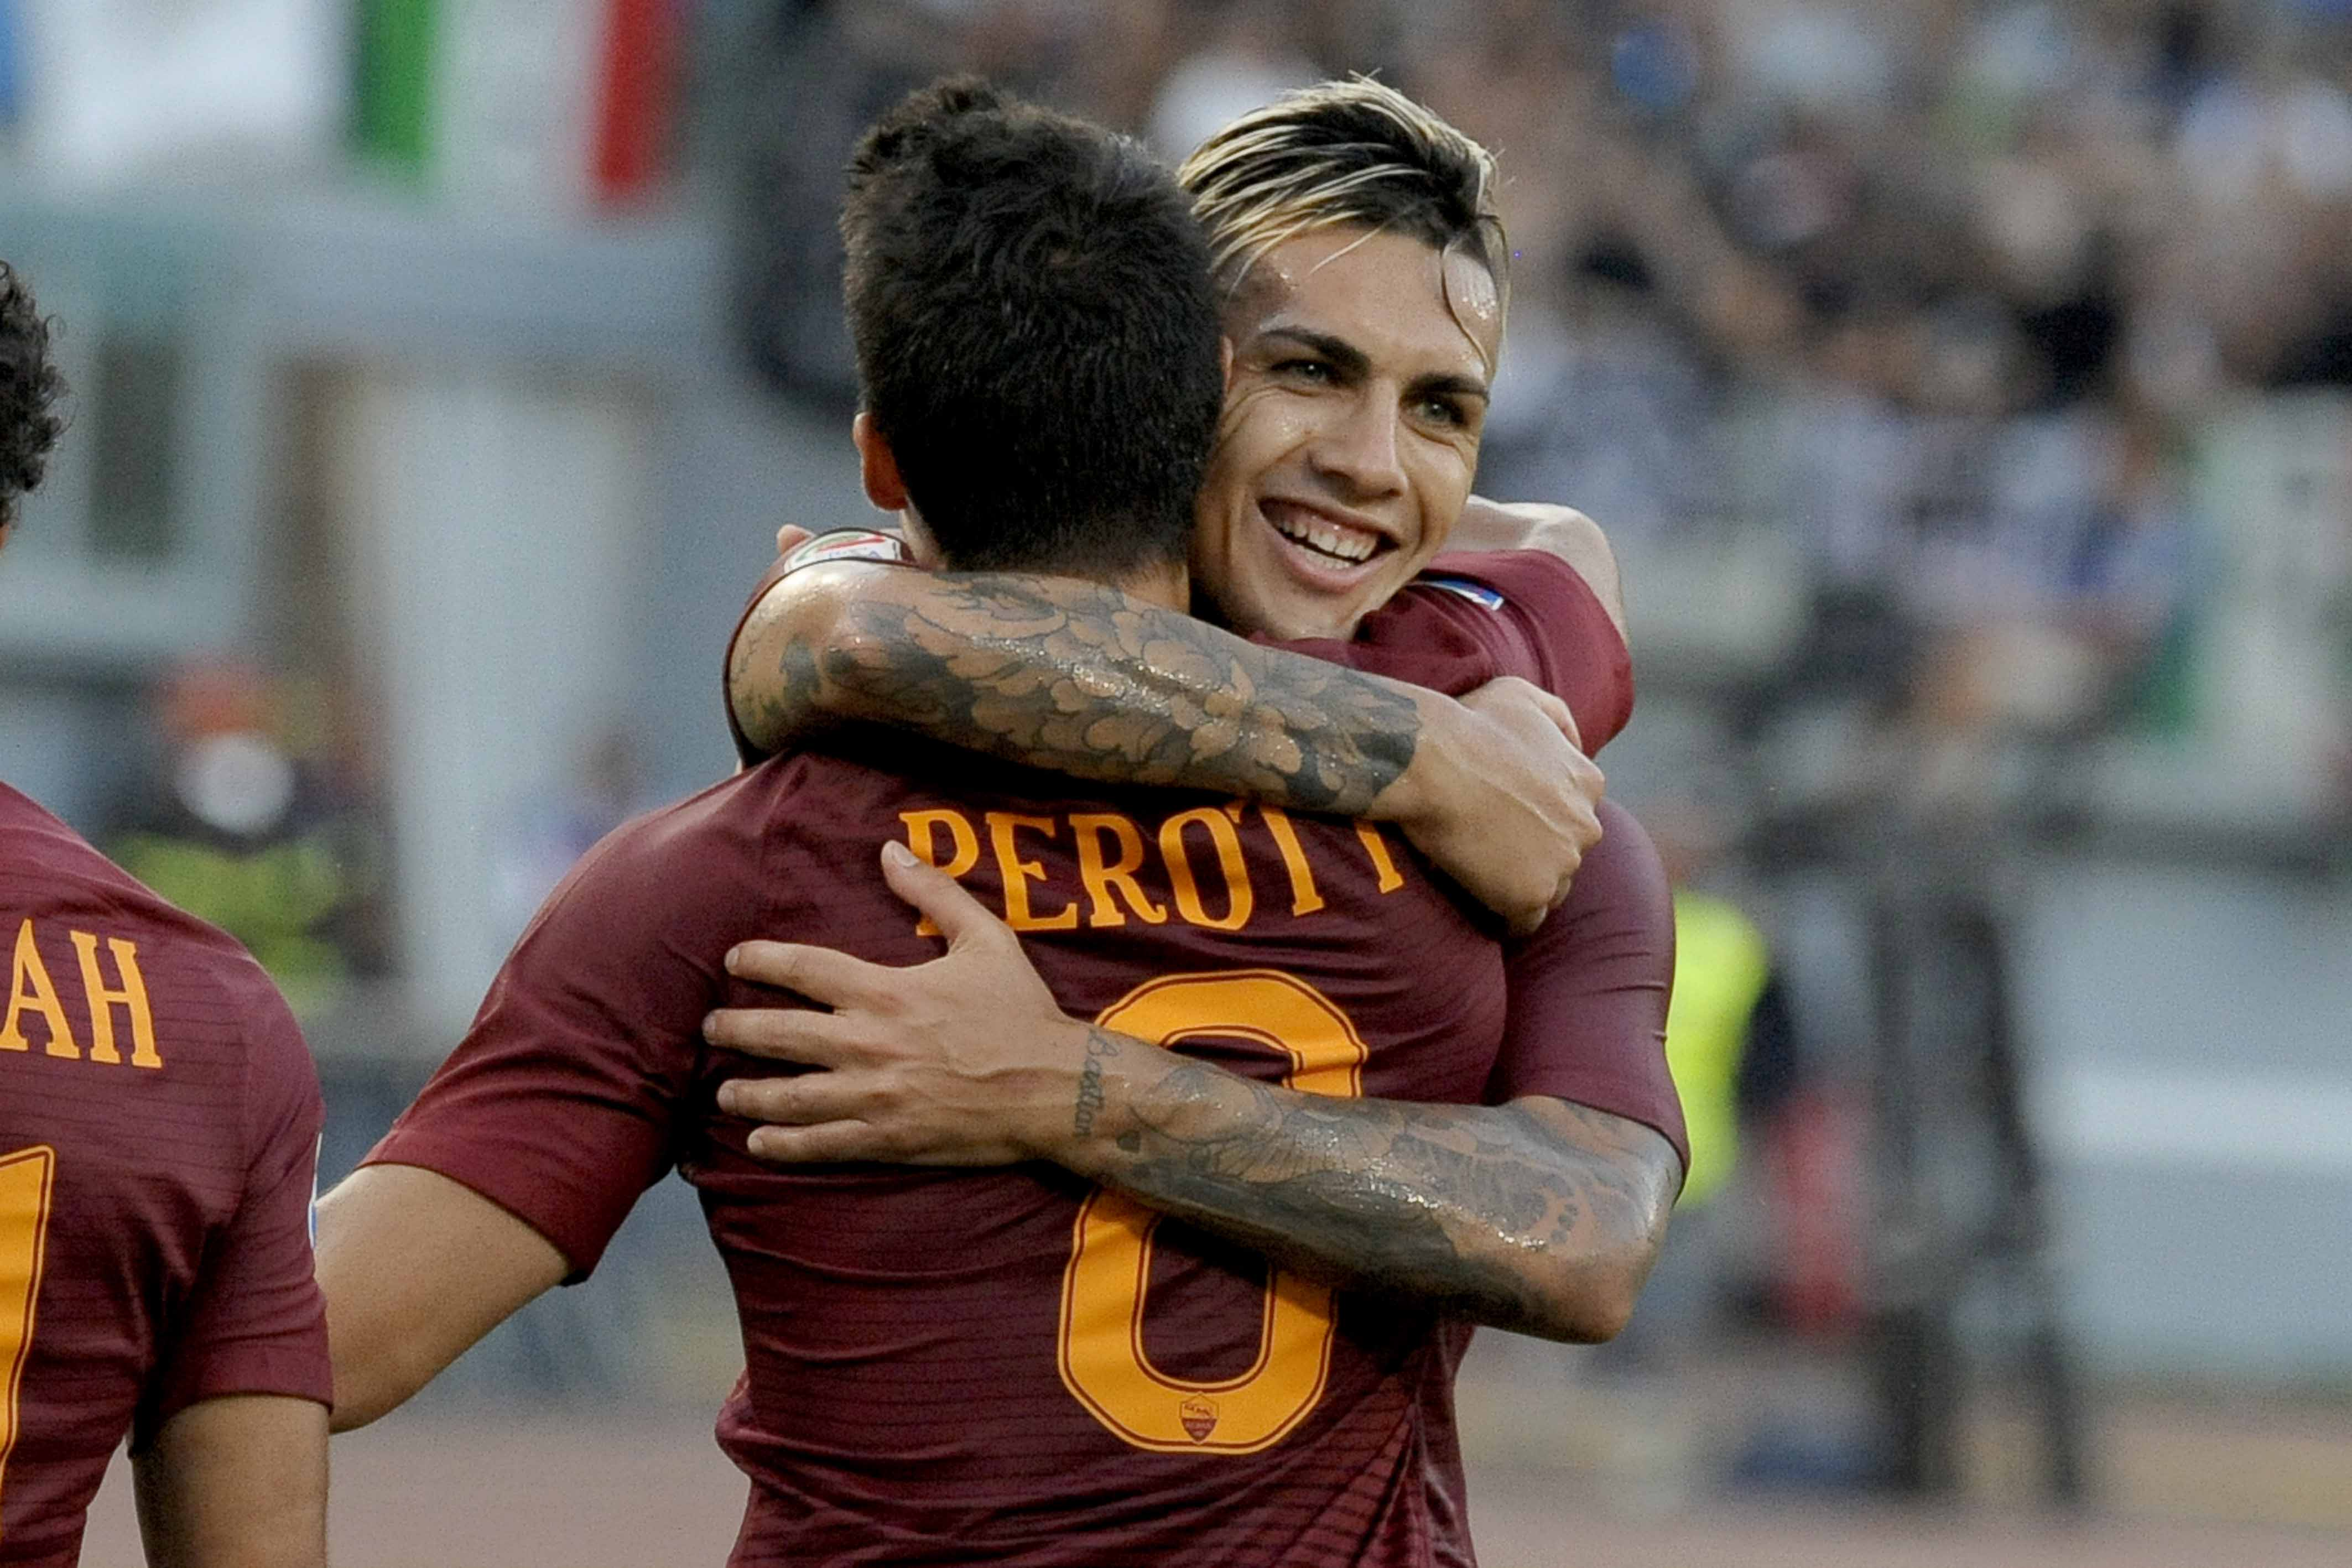 PEROTTI-PAFREDES-GOL-1-3-Roma-UDINESE-